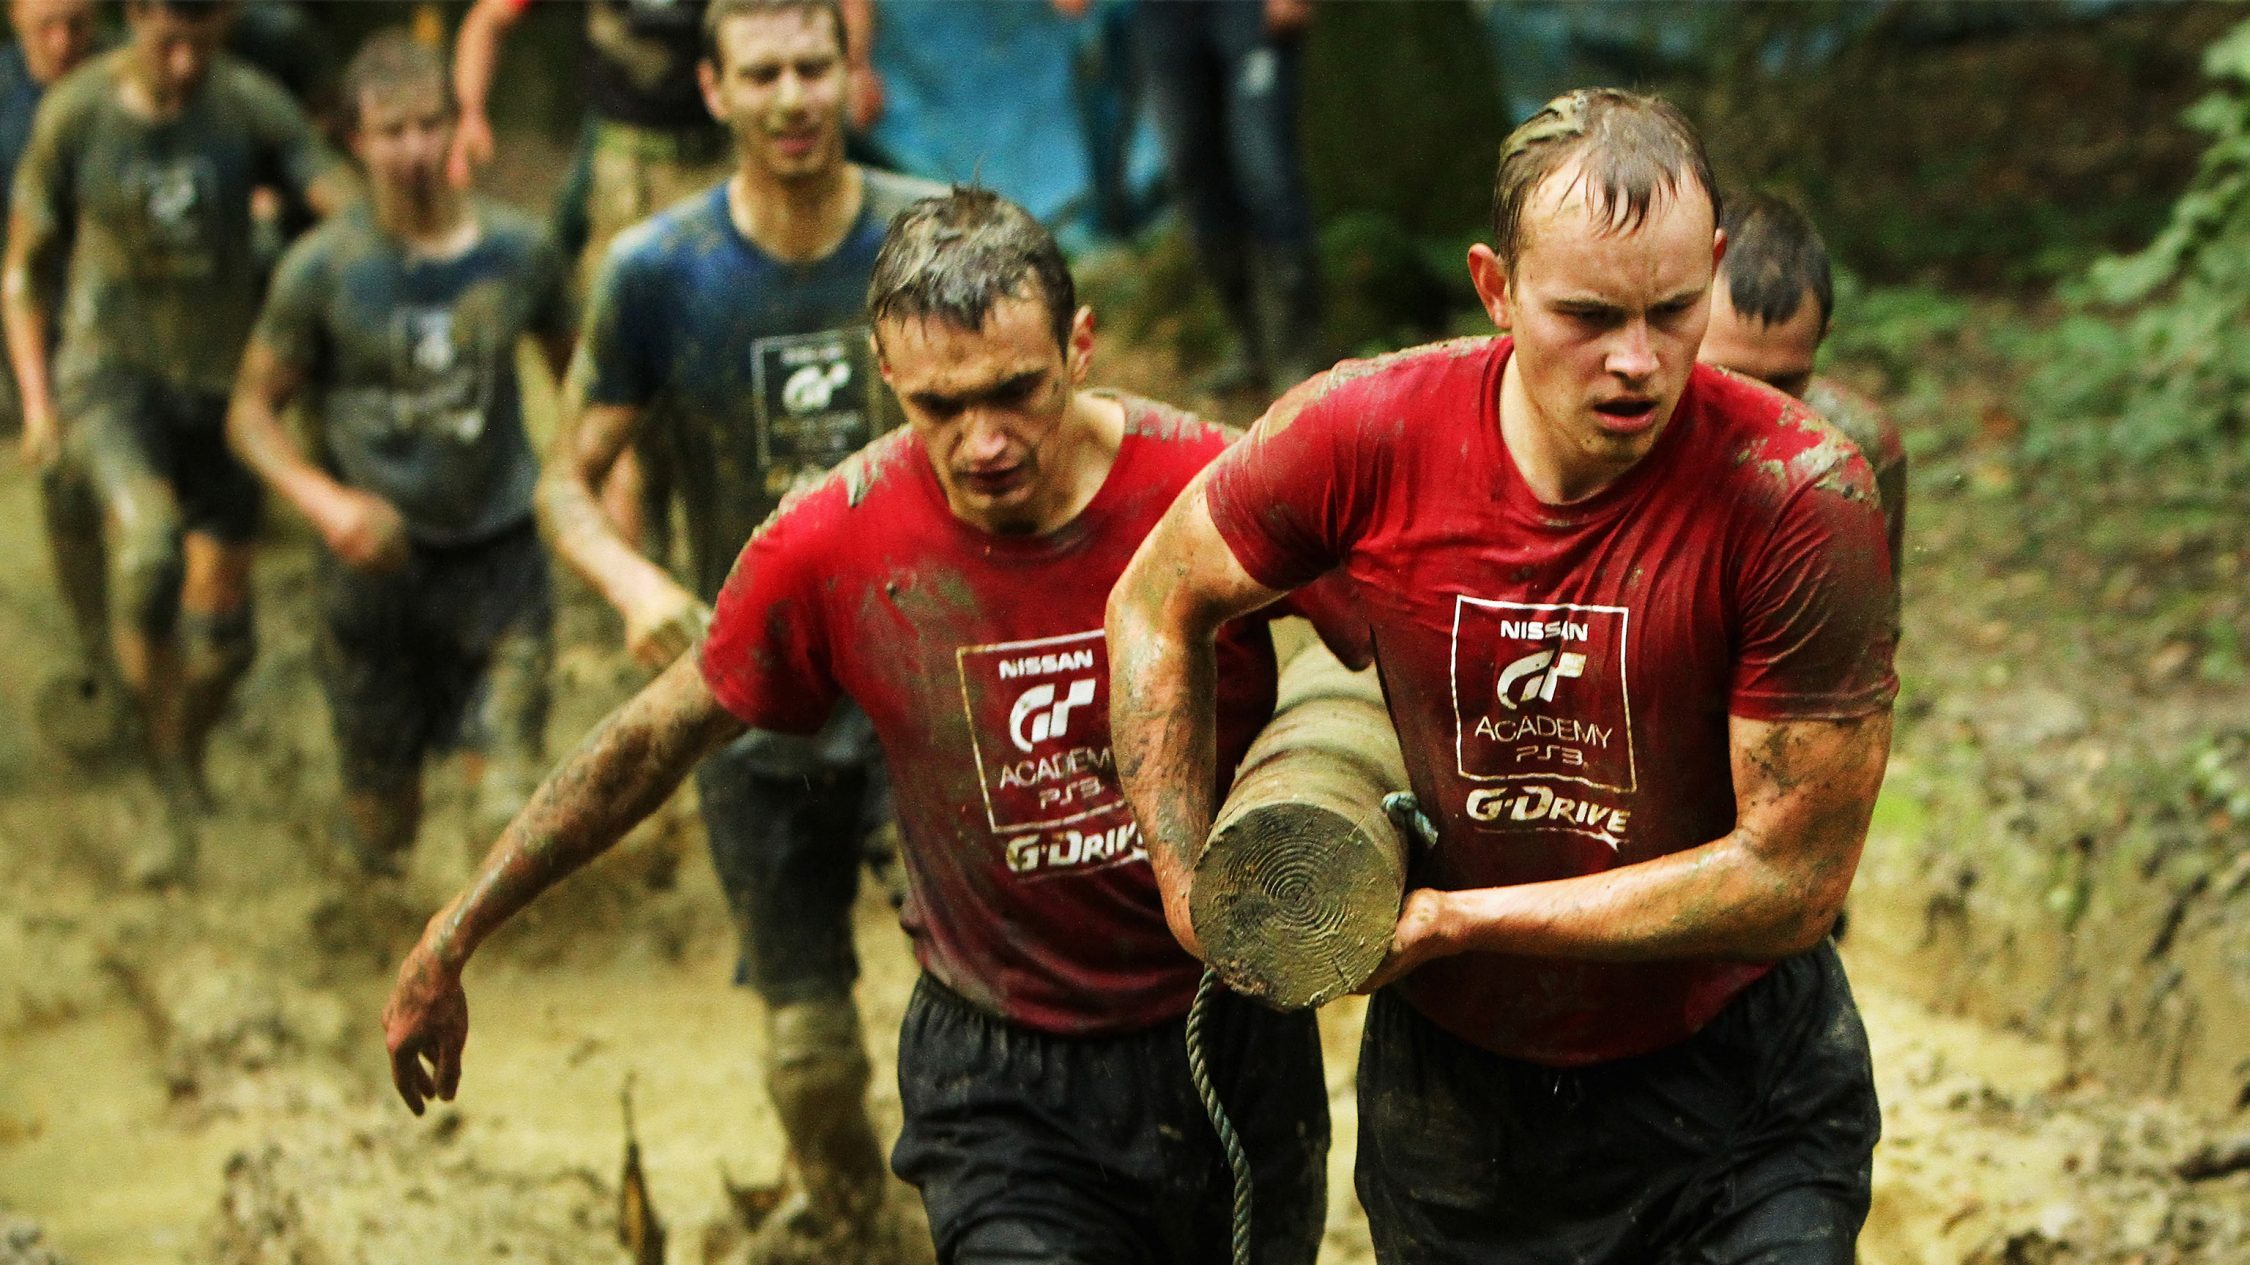 Nissan GT Academy Training camp mud run